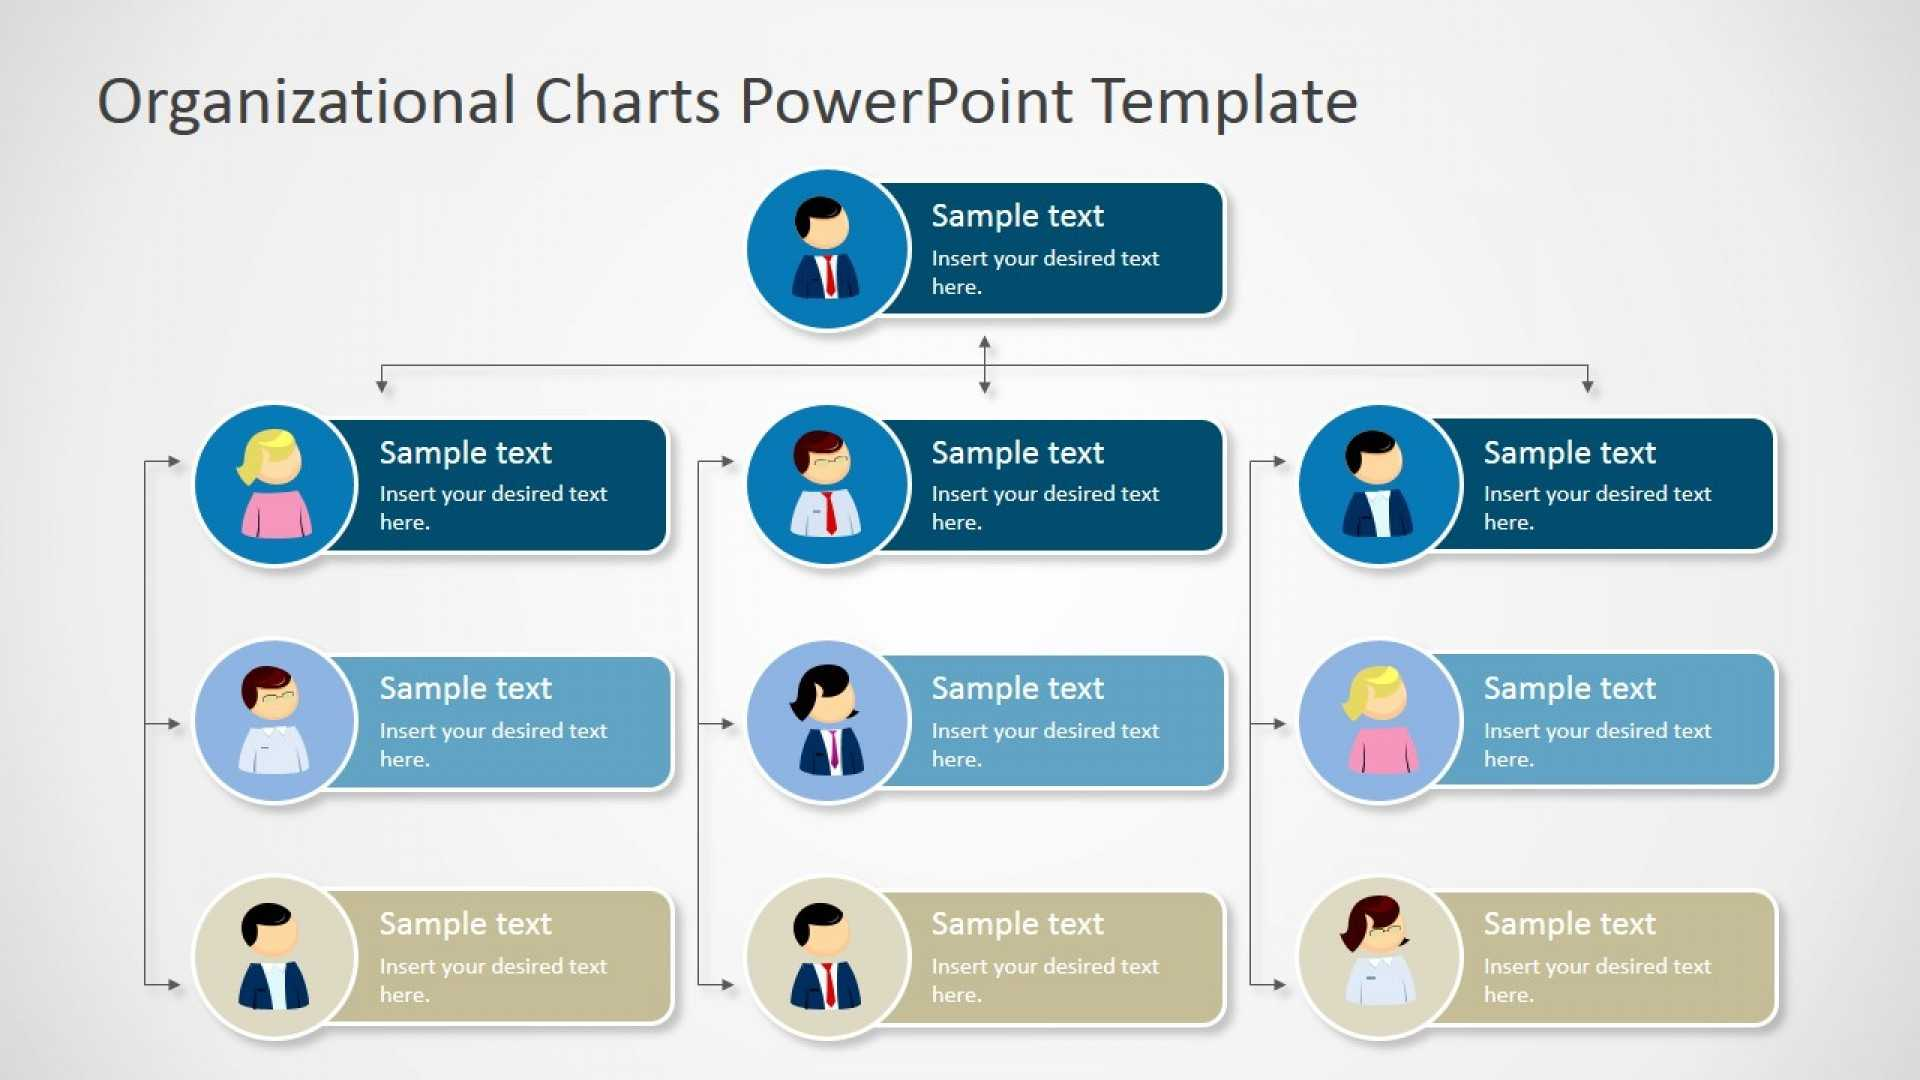 006 Microsoft Org Chart Template Powerpoint Organizational Within Microsoft Powerpoint Org Chart Template